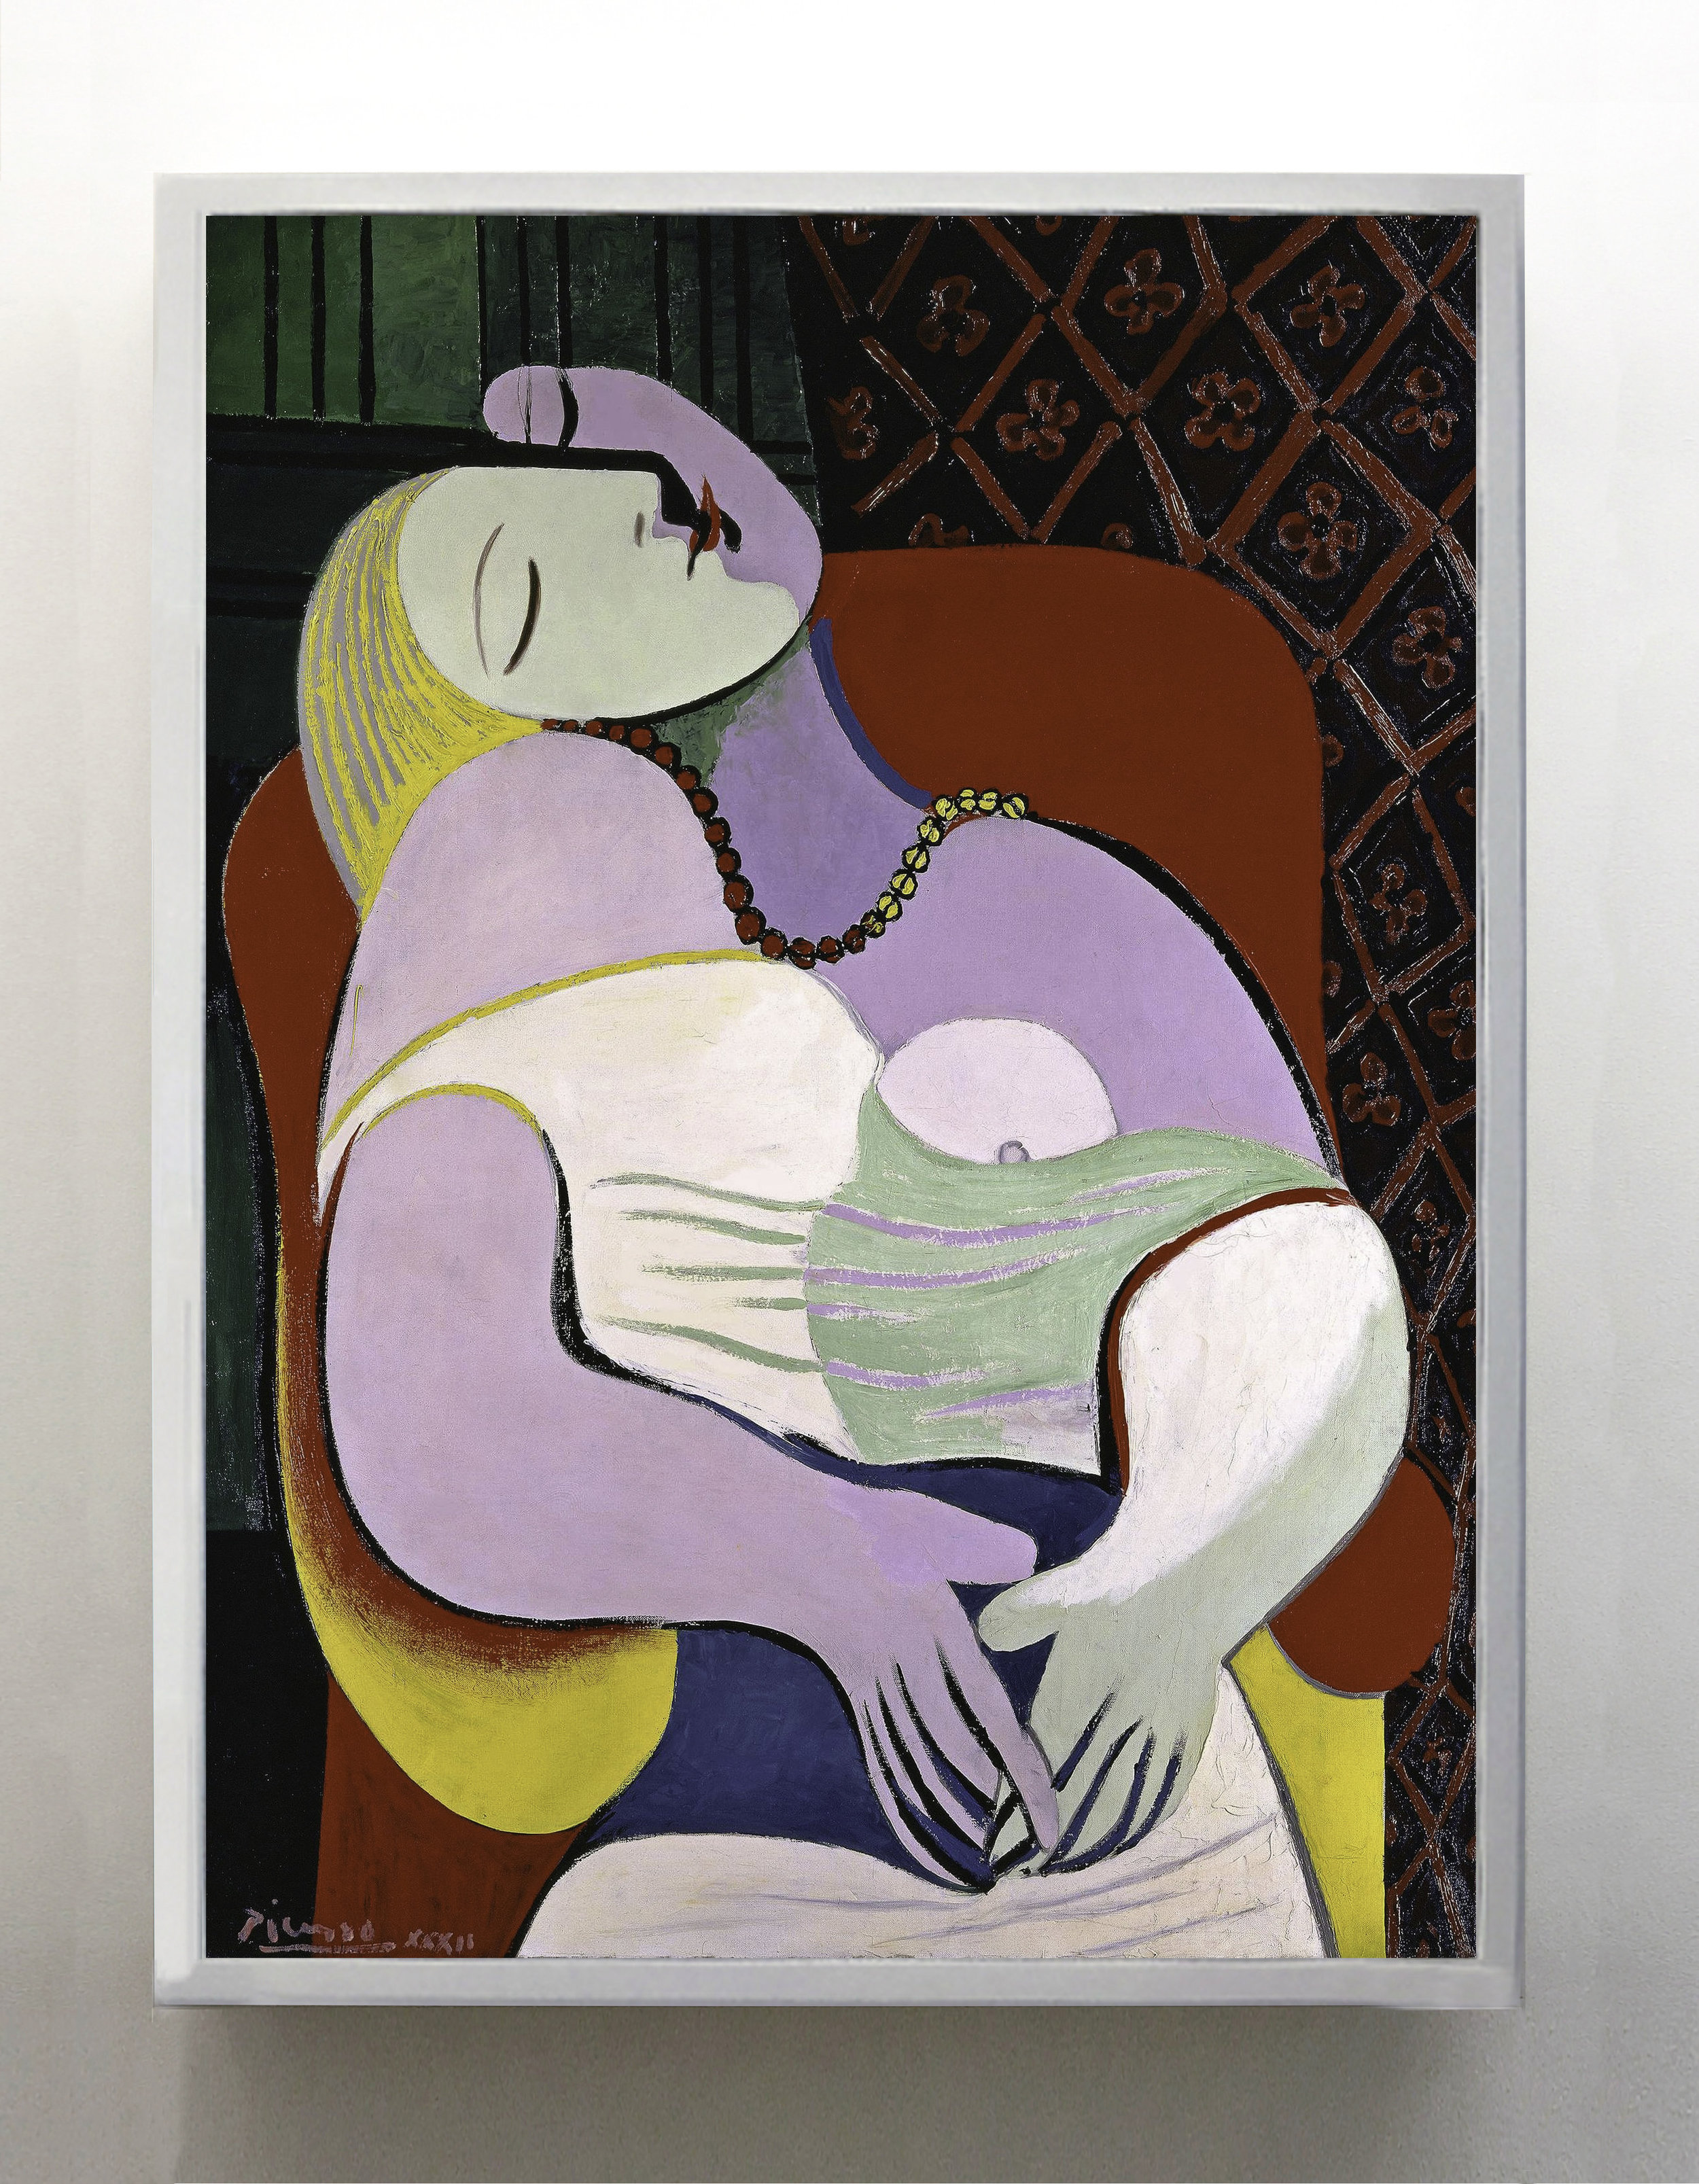 Palbo Picasso 'Le reve' 24 january 1932, oil on canvas, Steve Cohen private collection